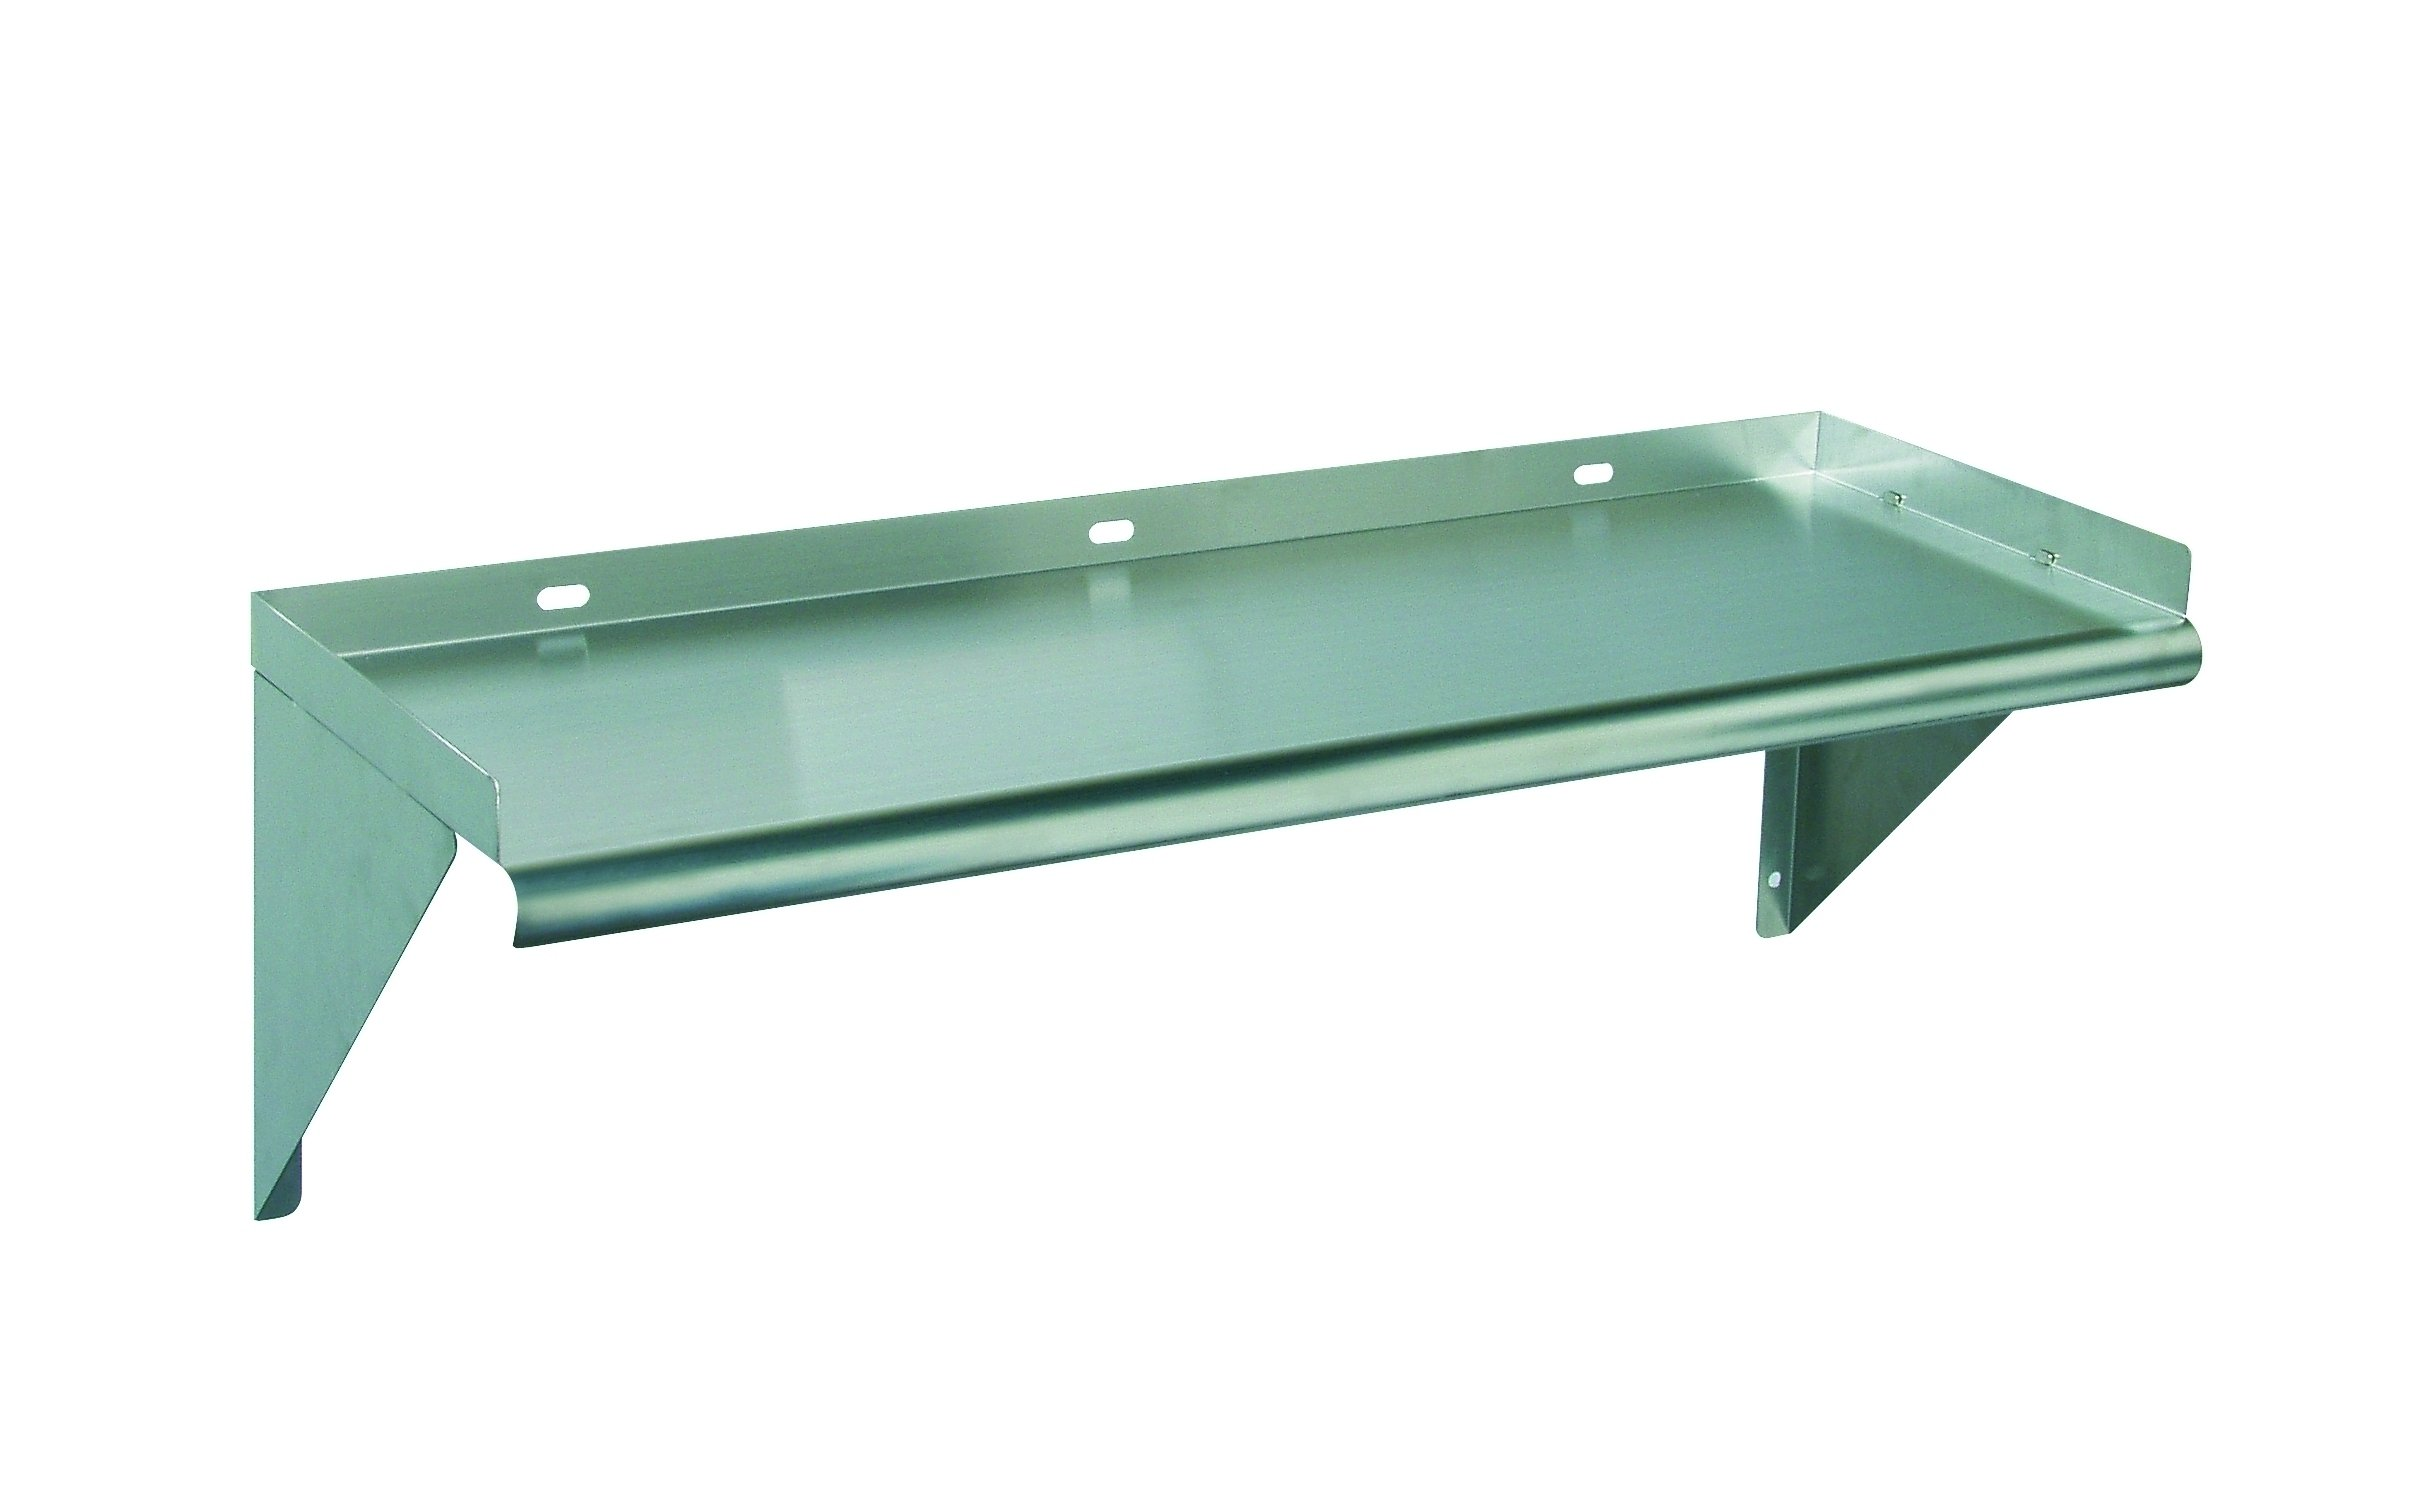 Buy Tarrison WT Heavy Duty Stainless Steel Top Work Table With - 16 gauge stainless steel table